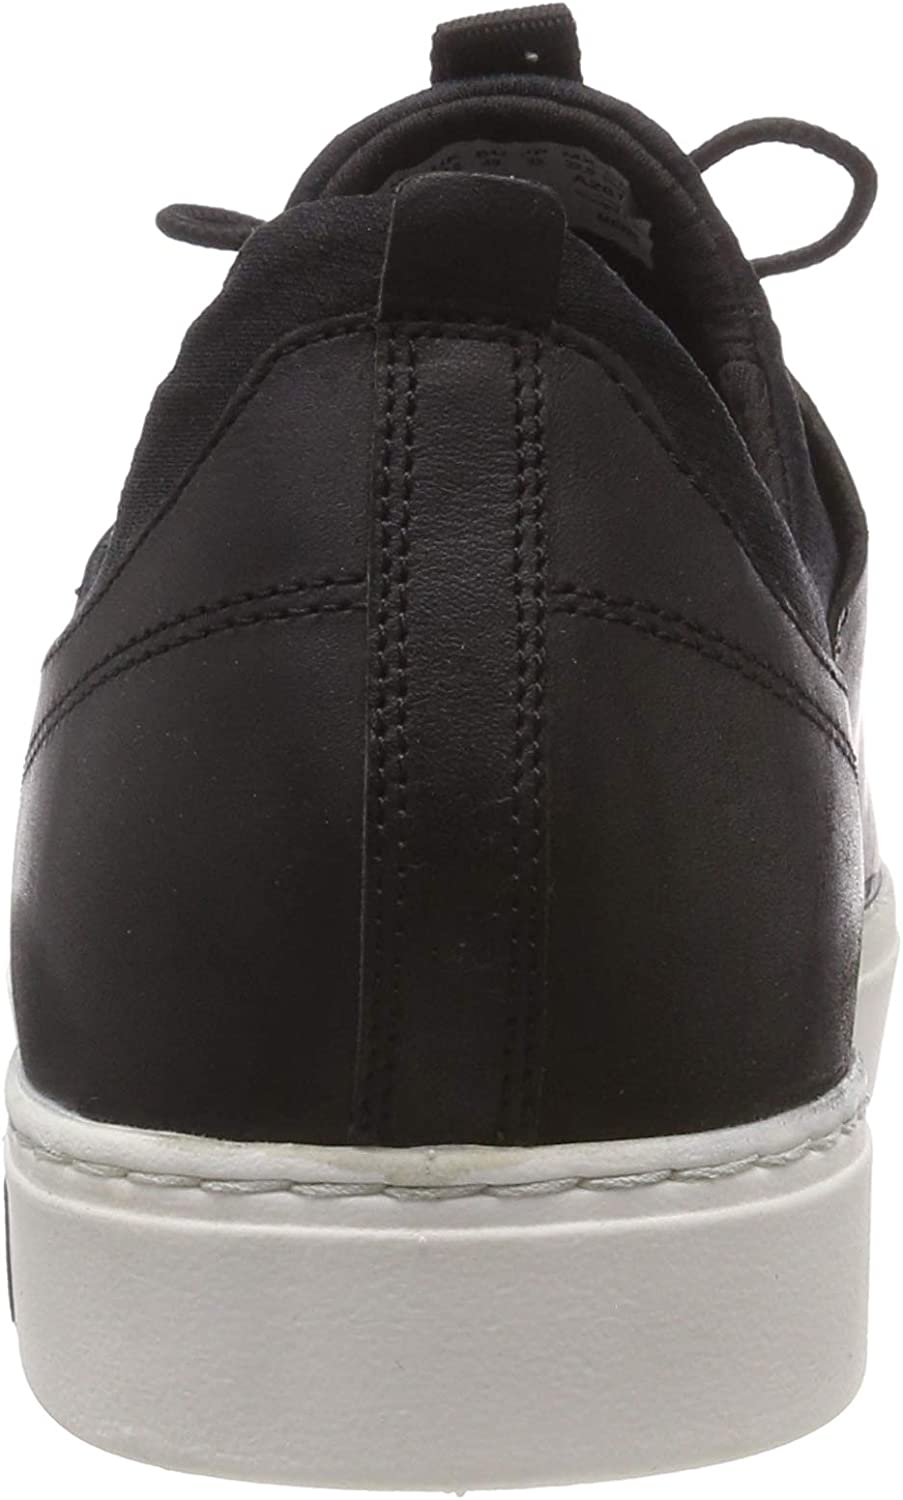 Timberland Amherst Leather Lace to Toe, Sneakers Basses Homme